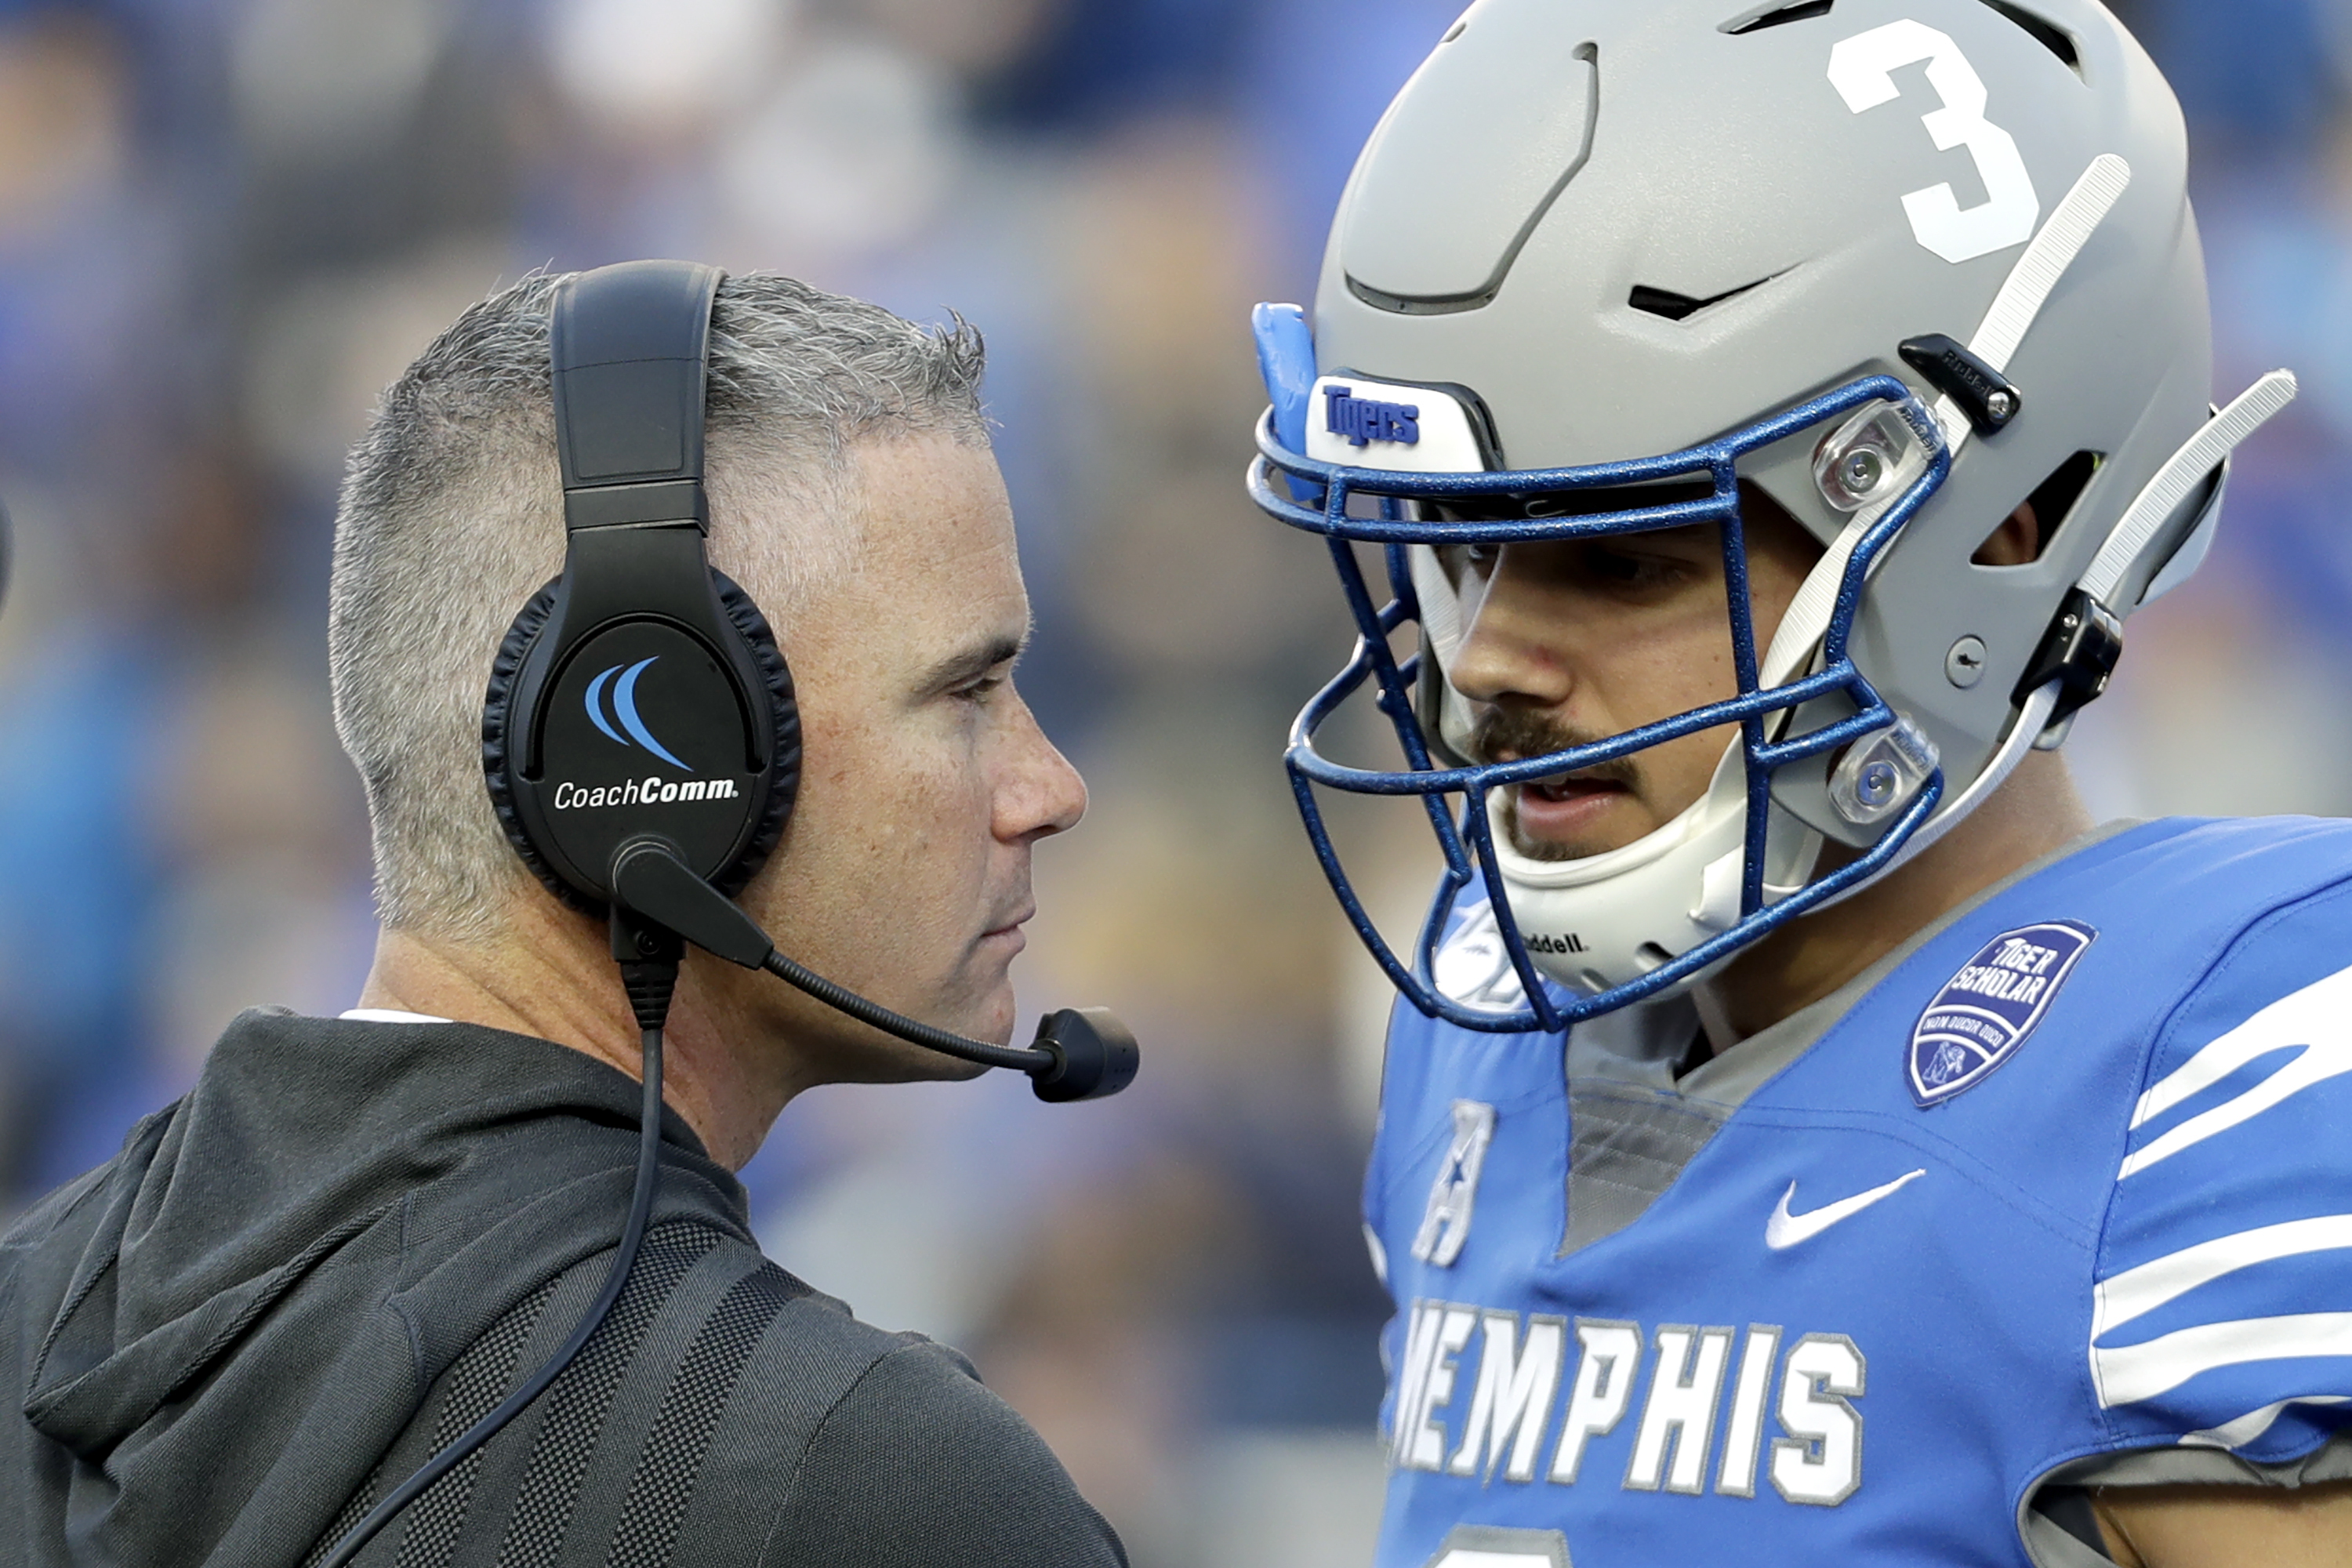 Mike Norvell Four Things I Learned About The New Fsu Football Coach From Memphis